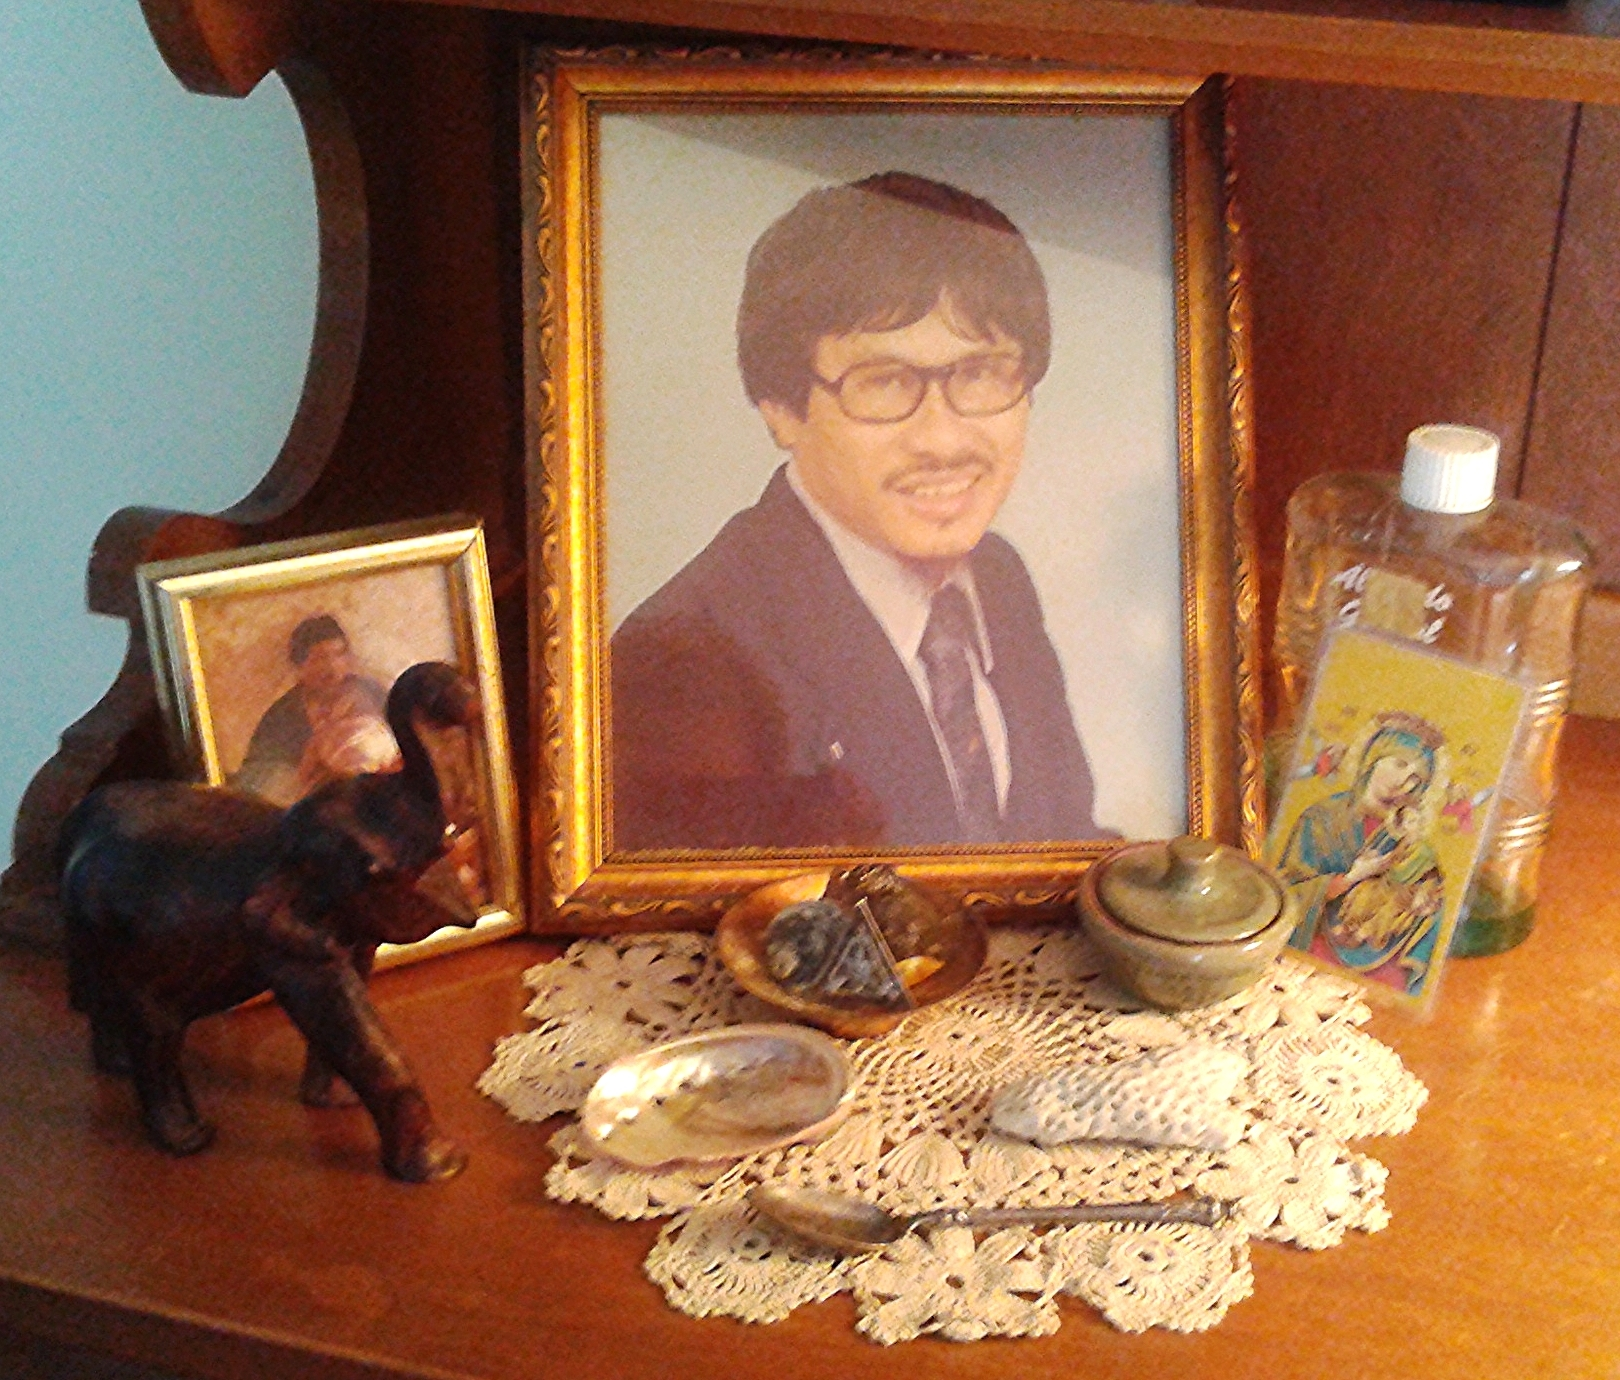 There are many shrines around our home including this one, dedicated to my father, Victor Hong Chu Look Kin.